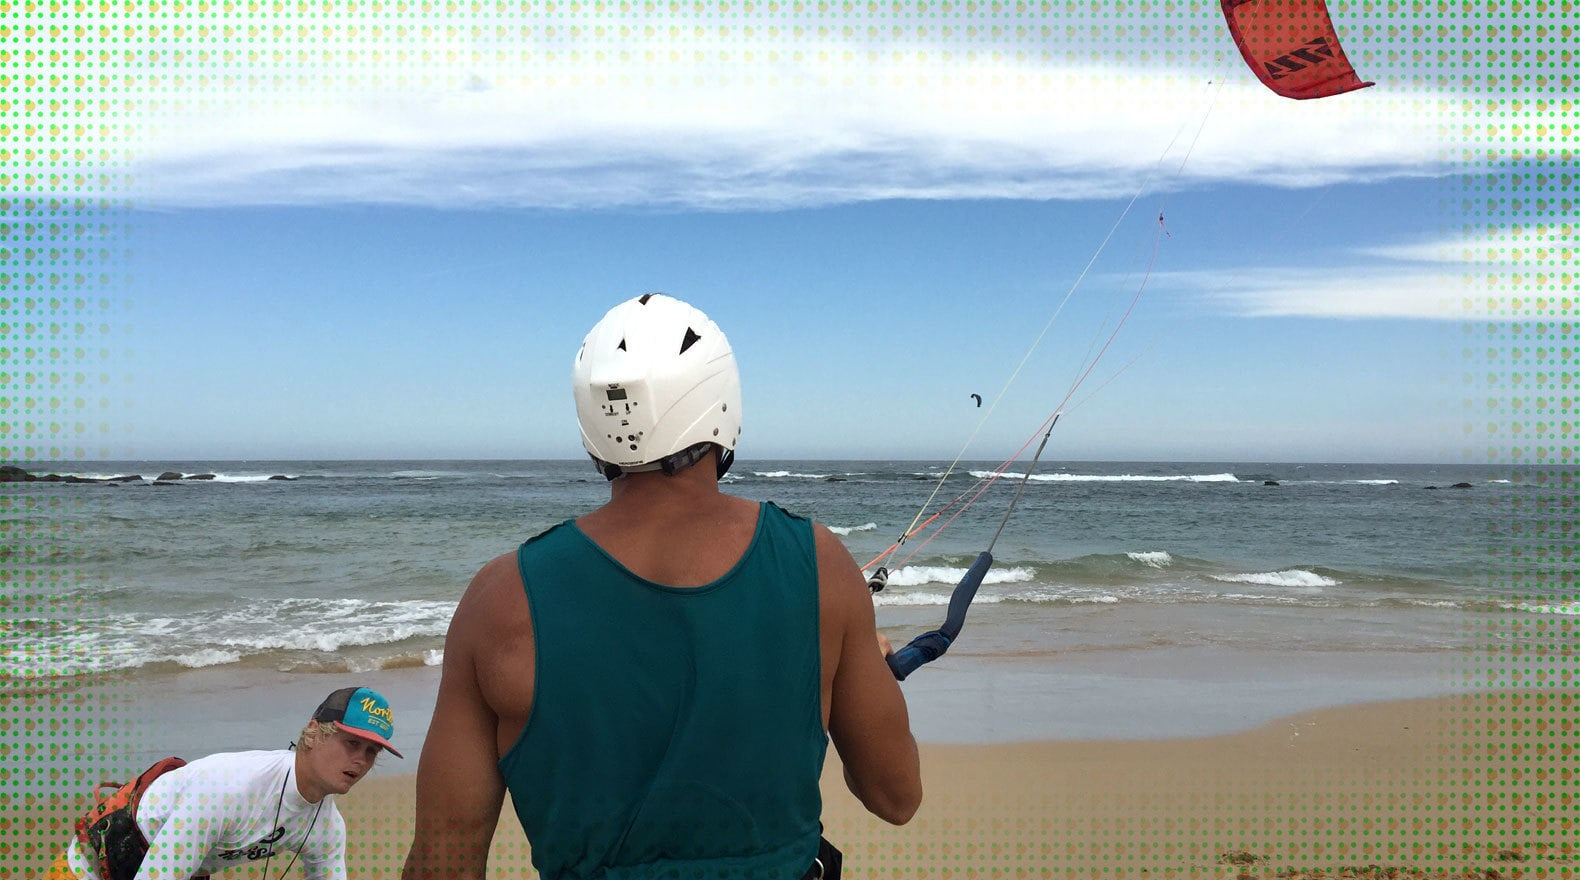 Courtney the Kite Surfing Pro...Well Kind of